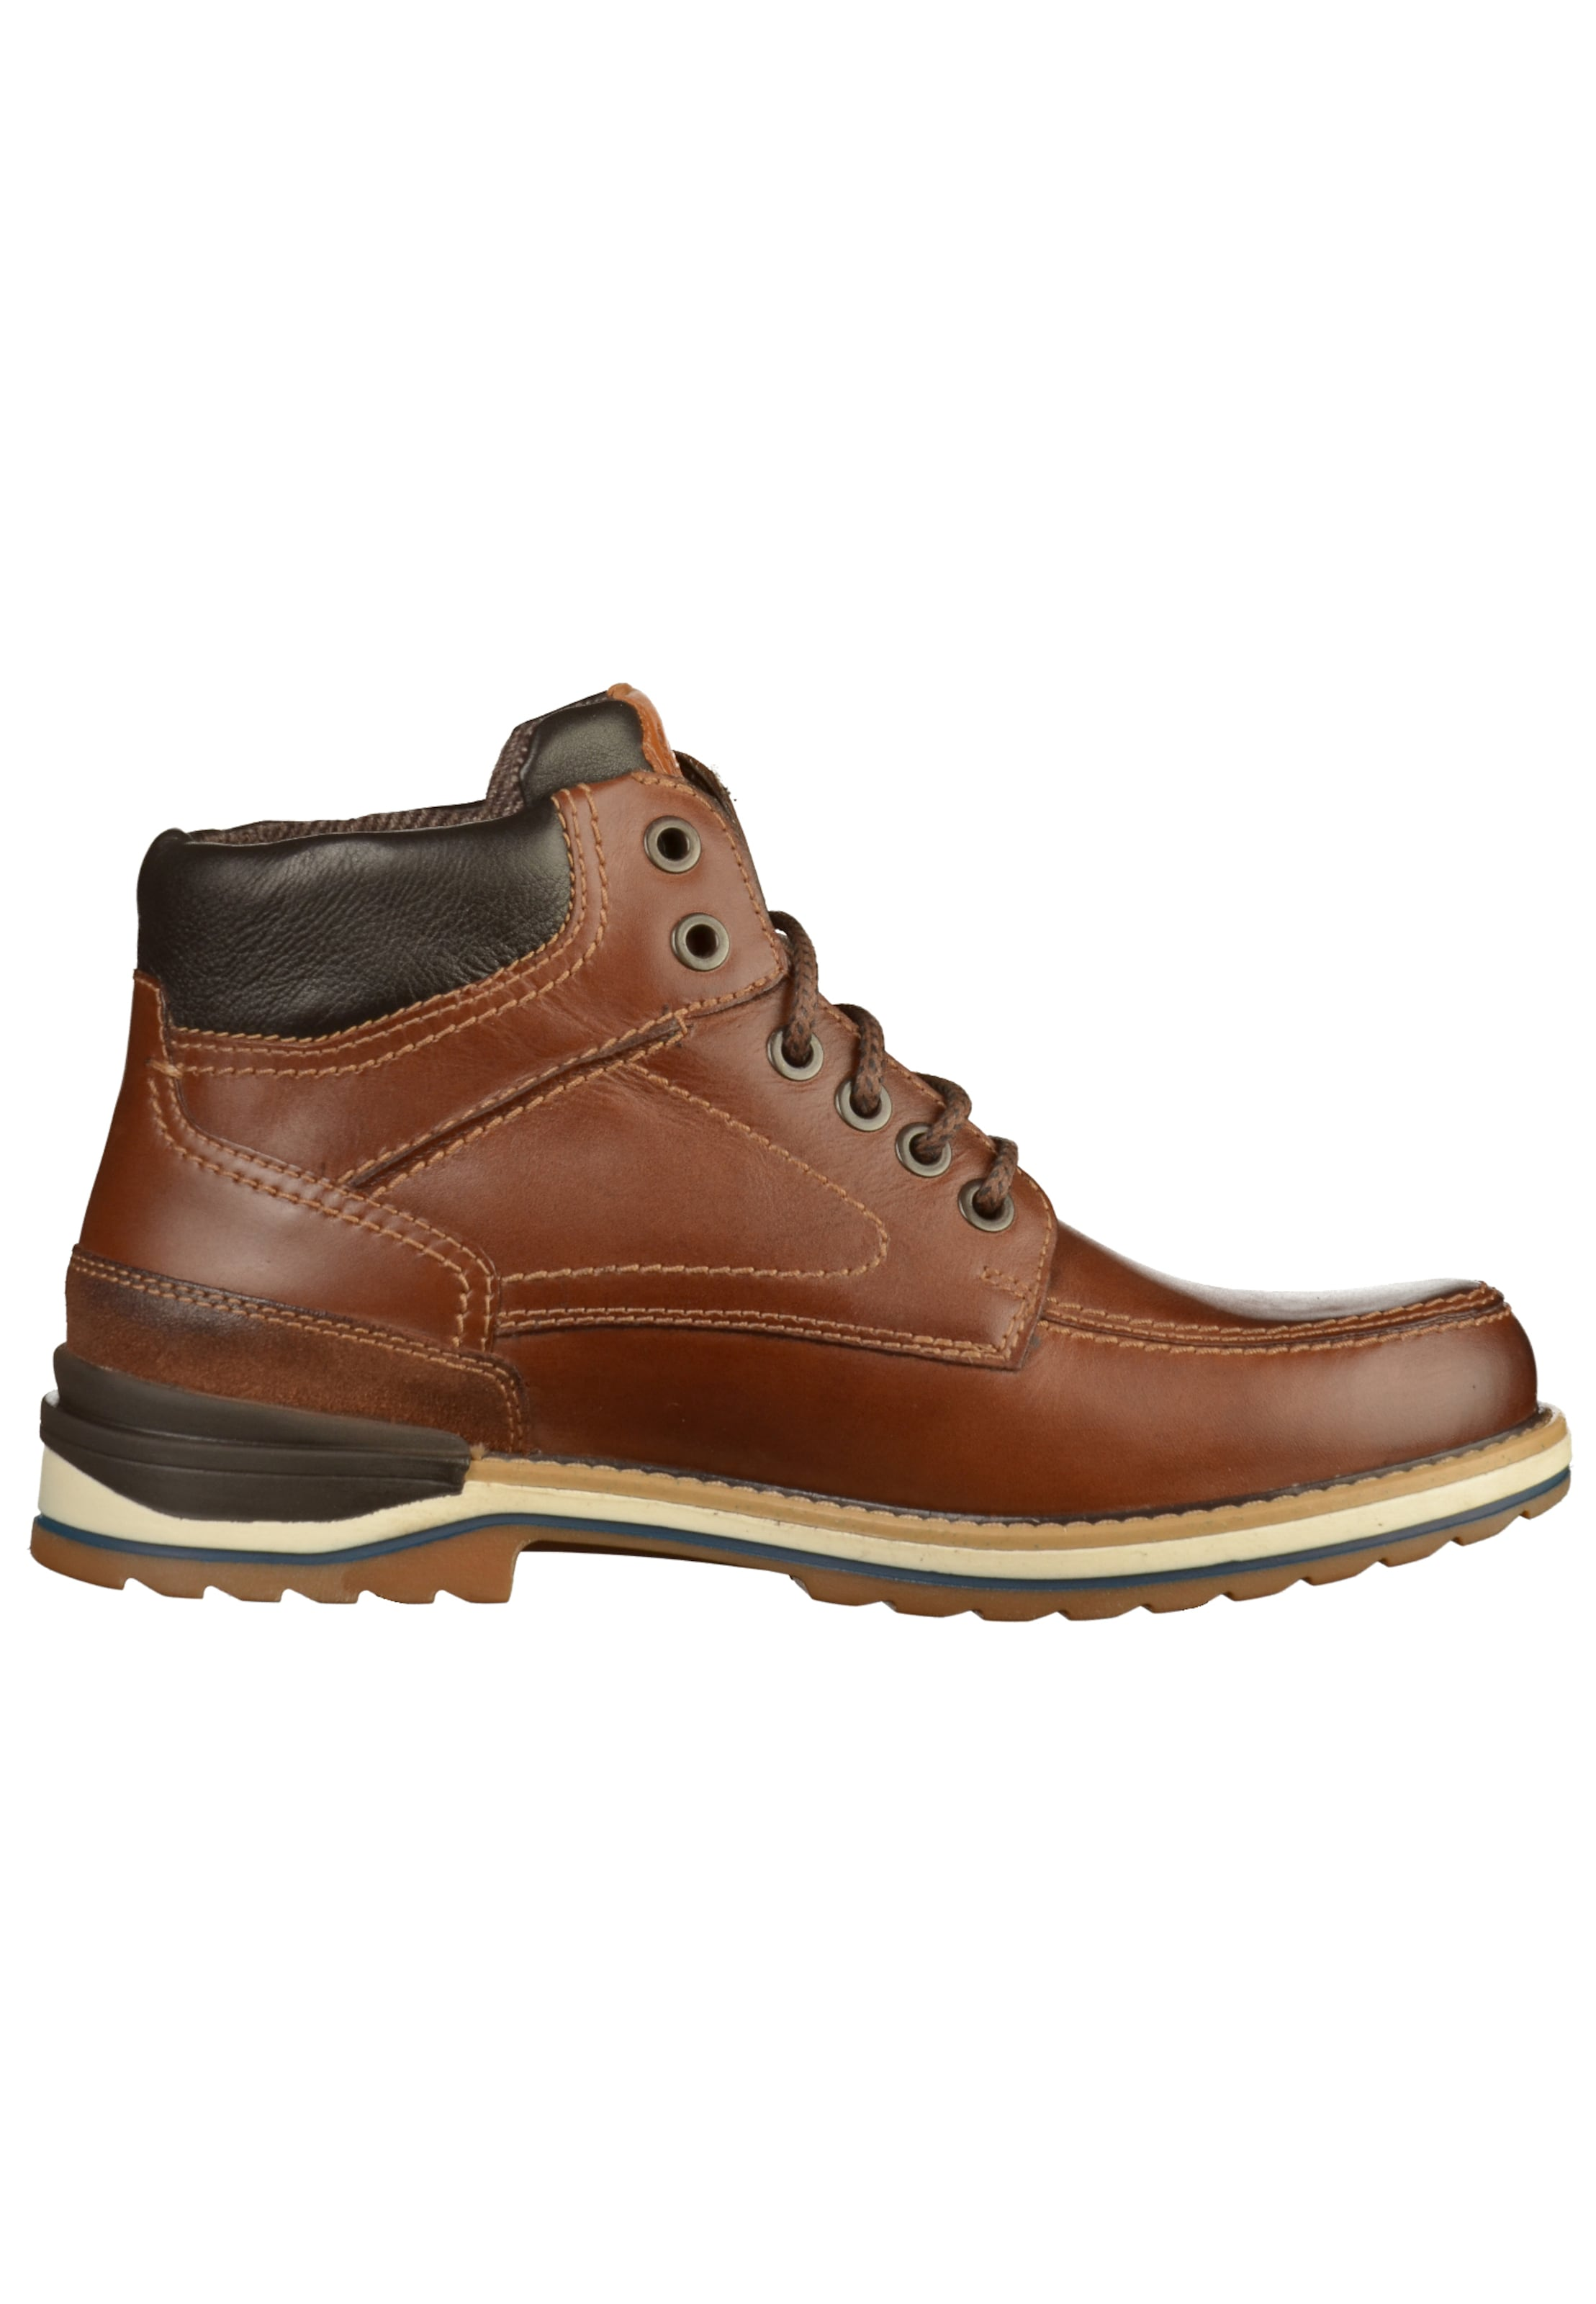 Fretz Men Marron Bottes En À Lacets ulKJ5TcF31